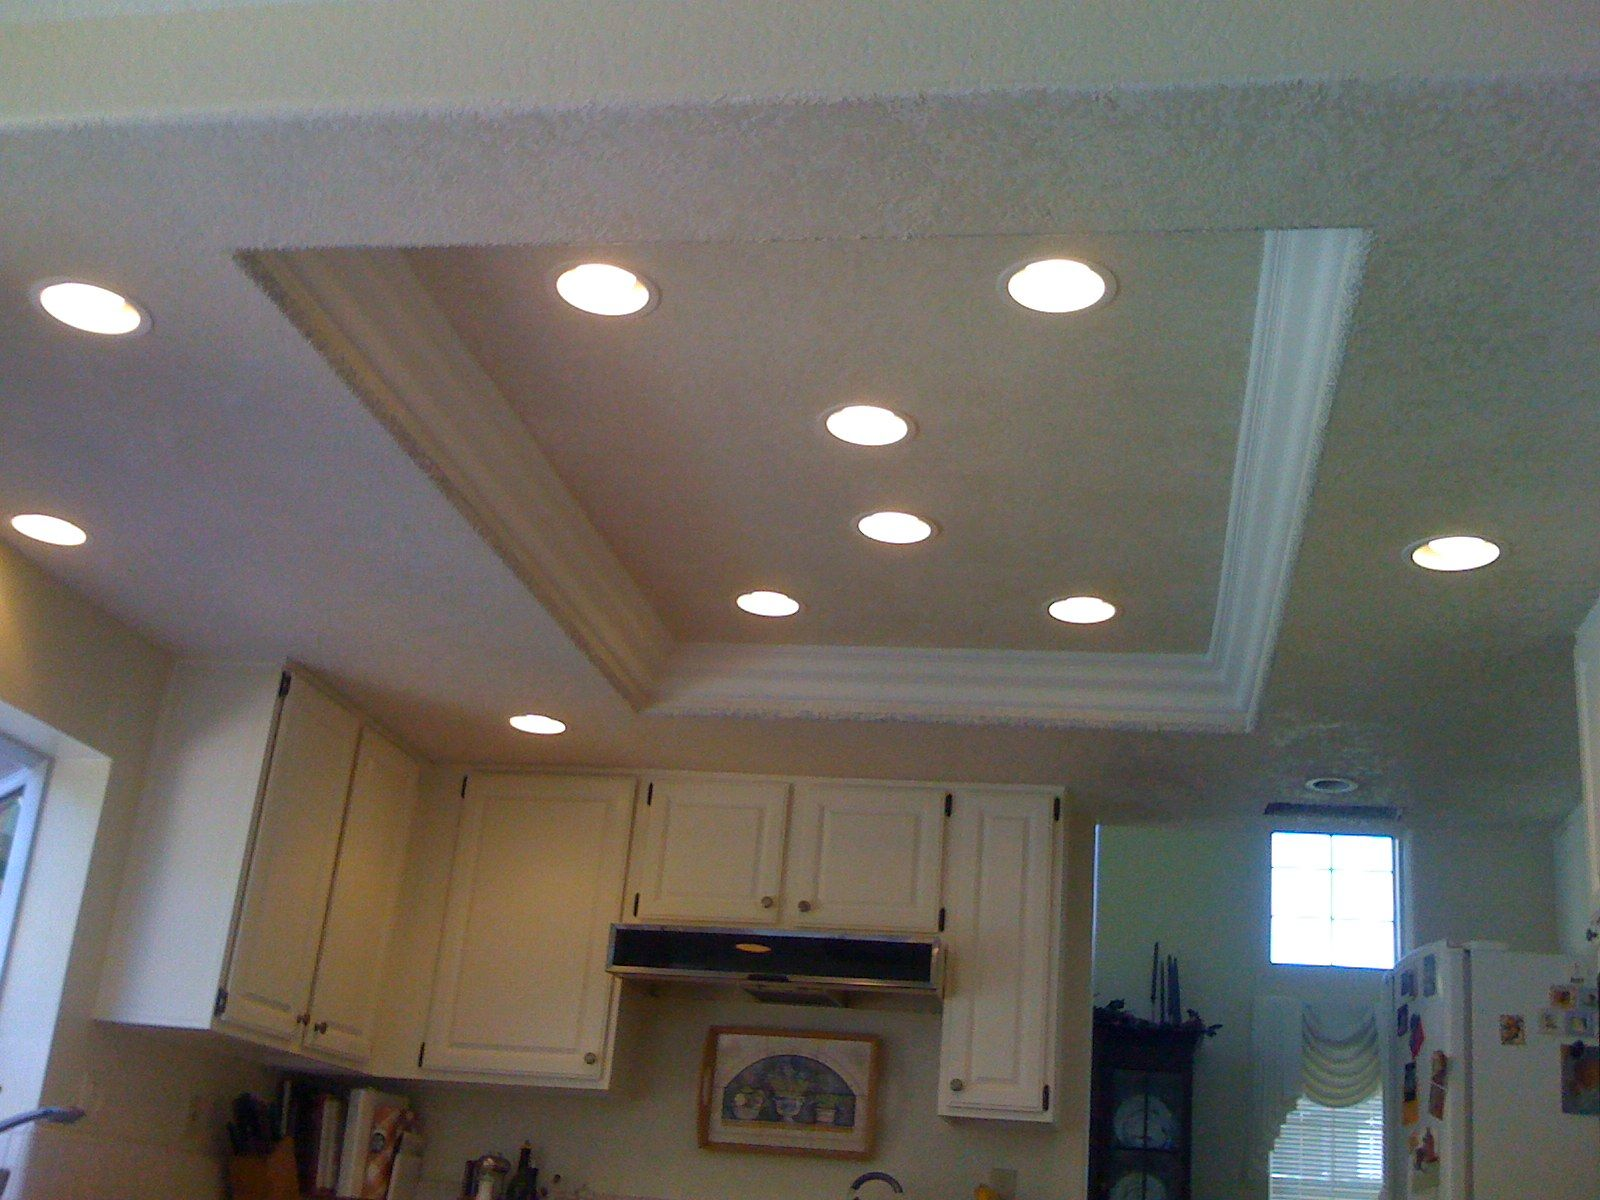 Recessed Lights In Kitchen Kitchen Recessed Lighting Lights Replace Them With Recessed